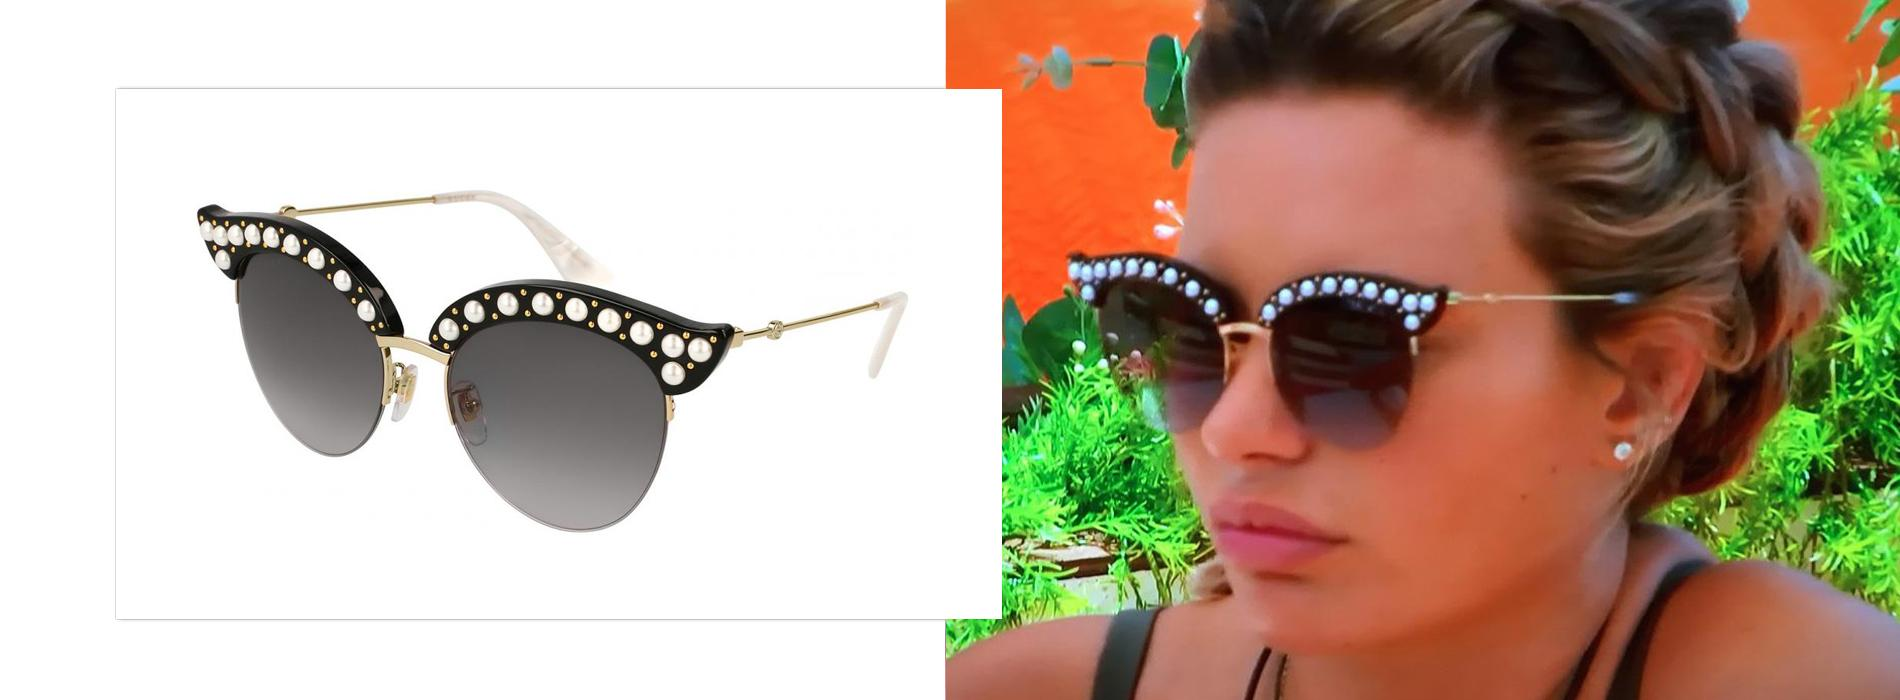 ed9dbc70a86 Love Island Sunglasses - Get The Look